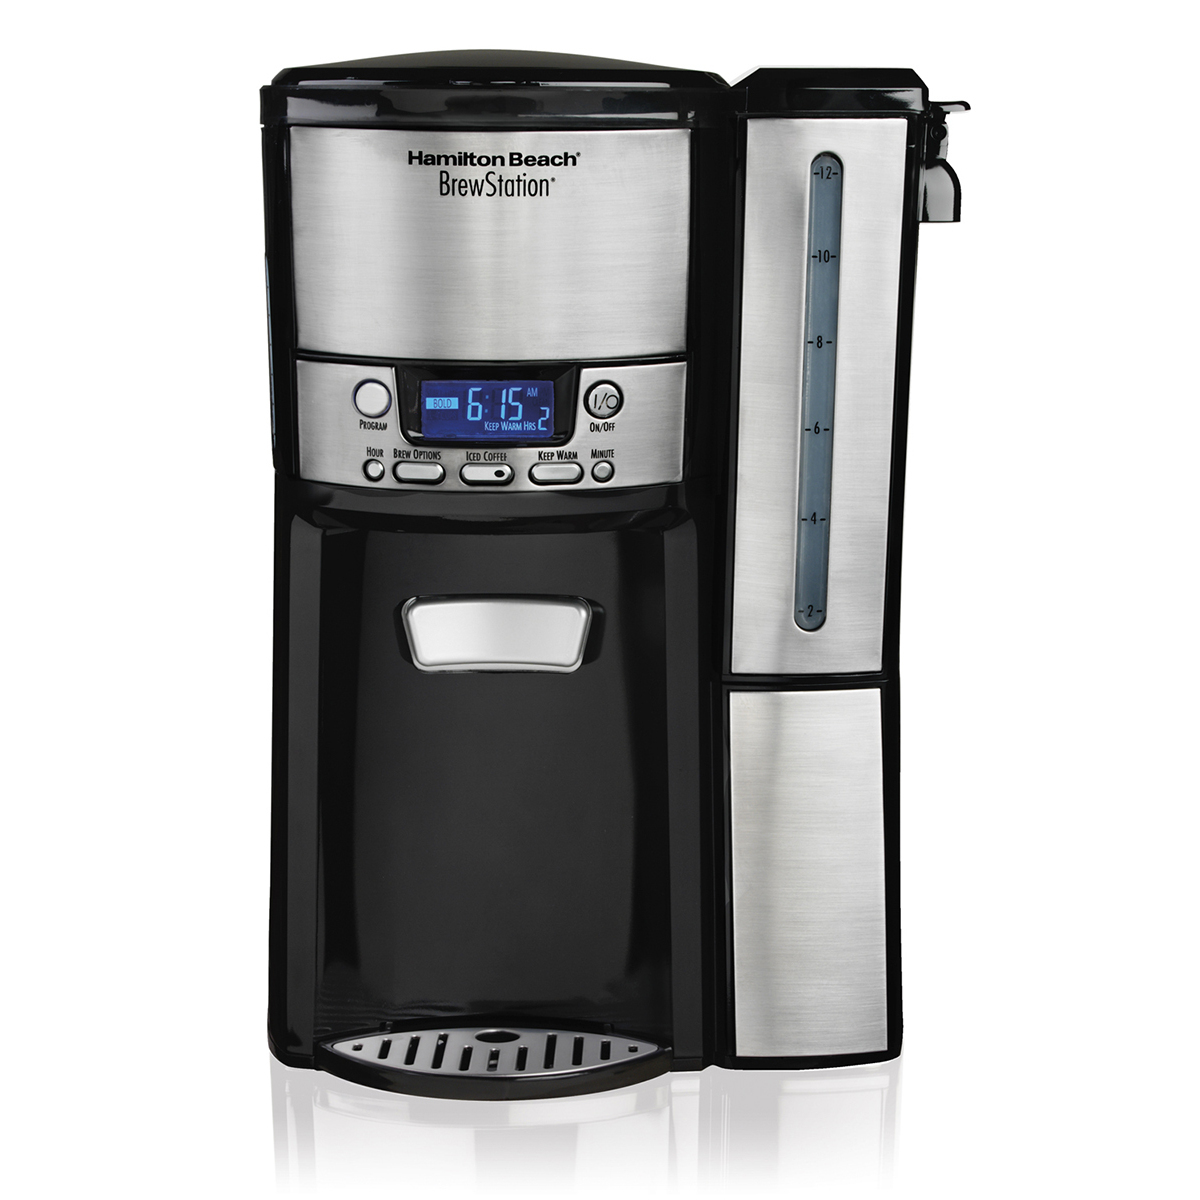 Stainless Steel Programmable Single Serve Coffee Maker with Removable Drip Tray